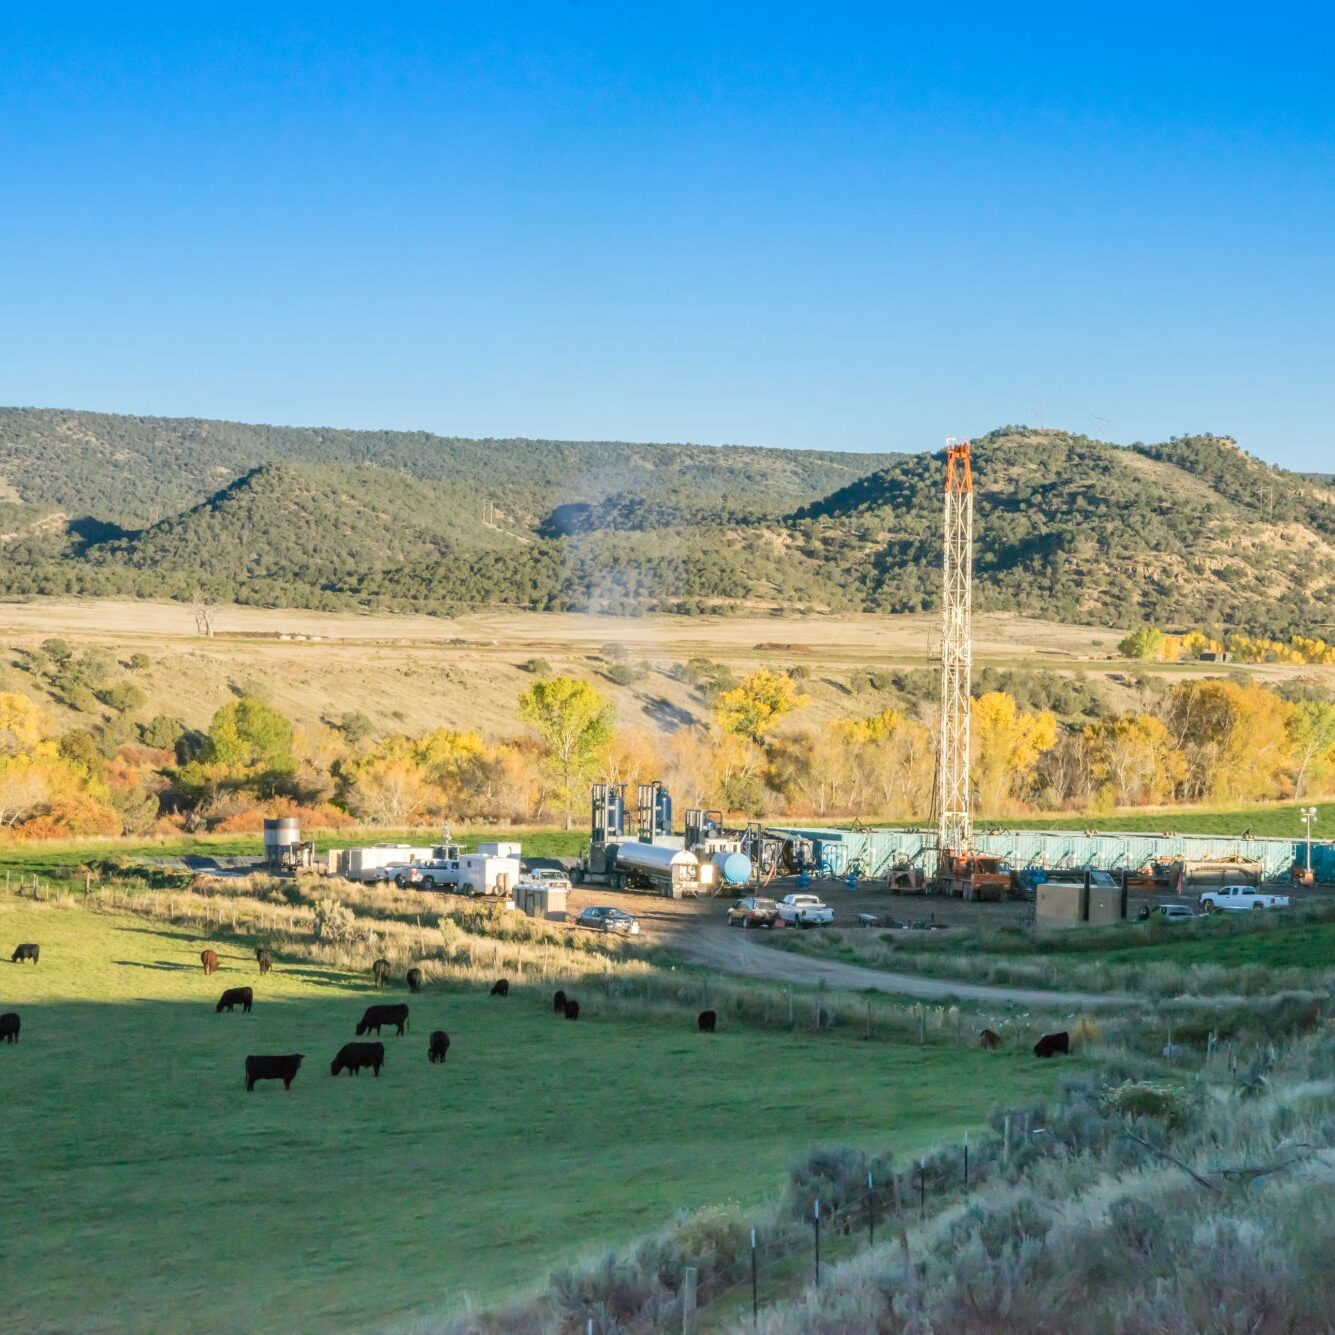 Drilling Fracking Rig in a mountain valley near a field full of cattle grazing.  Fracking Rig is performing a fracking operation to liberate trapped crude oil and natural gas into the pipeline to a refinery.